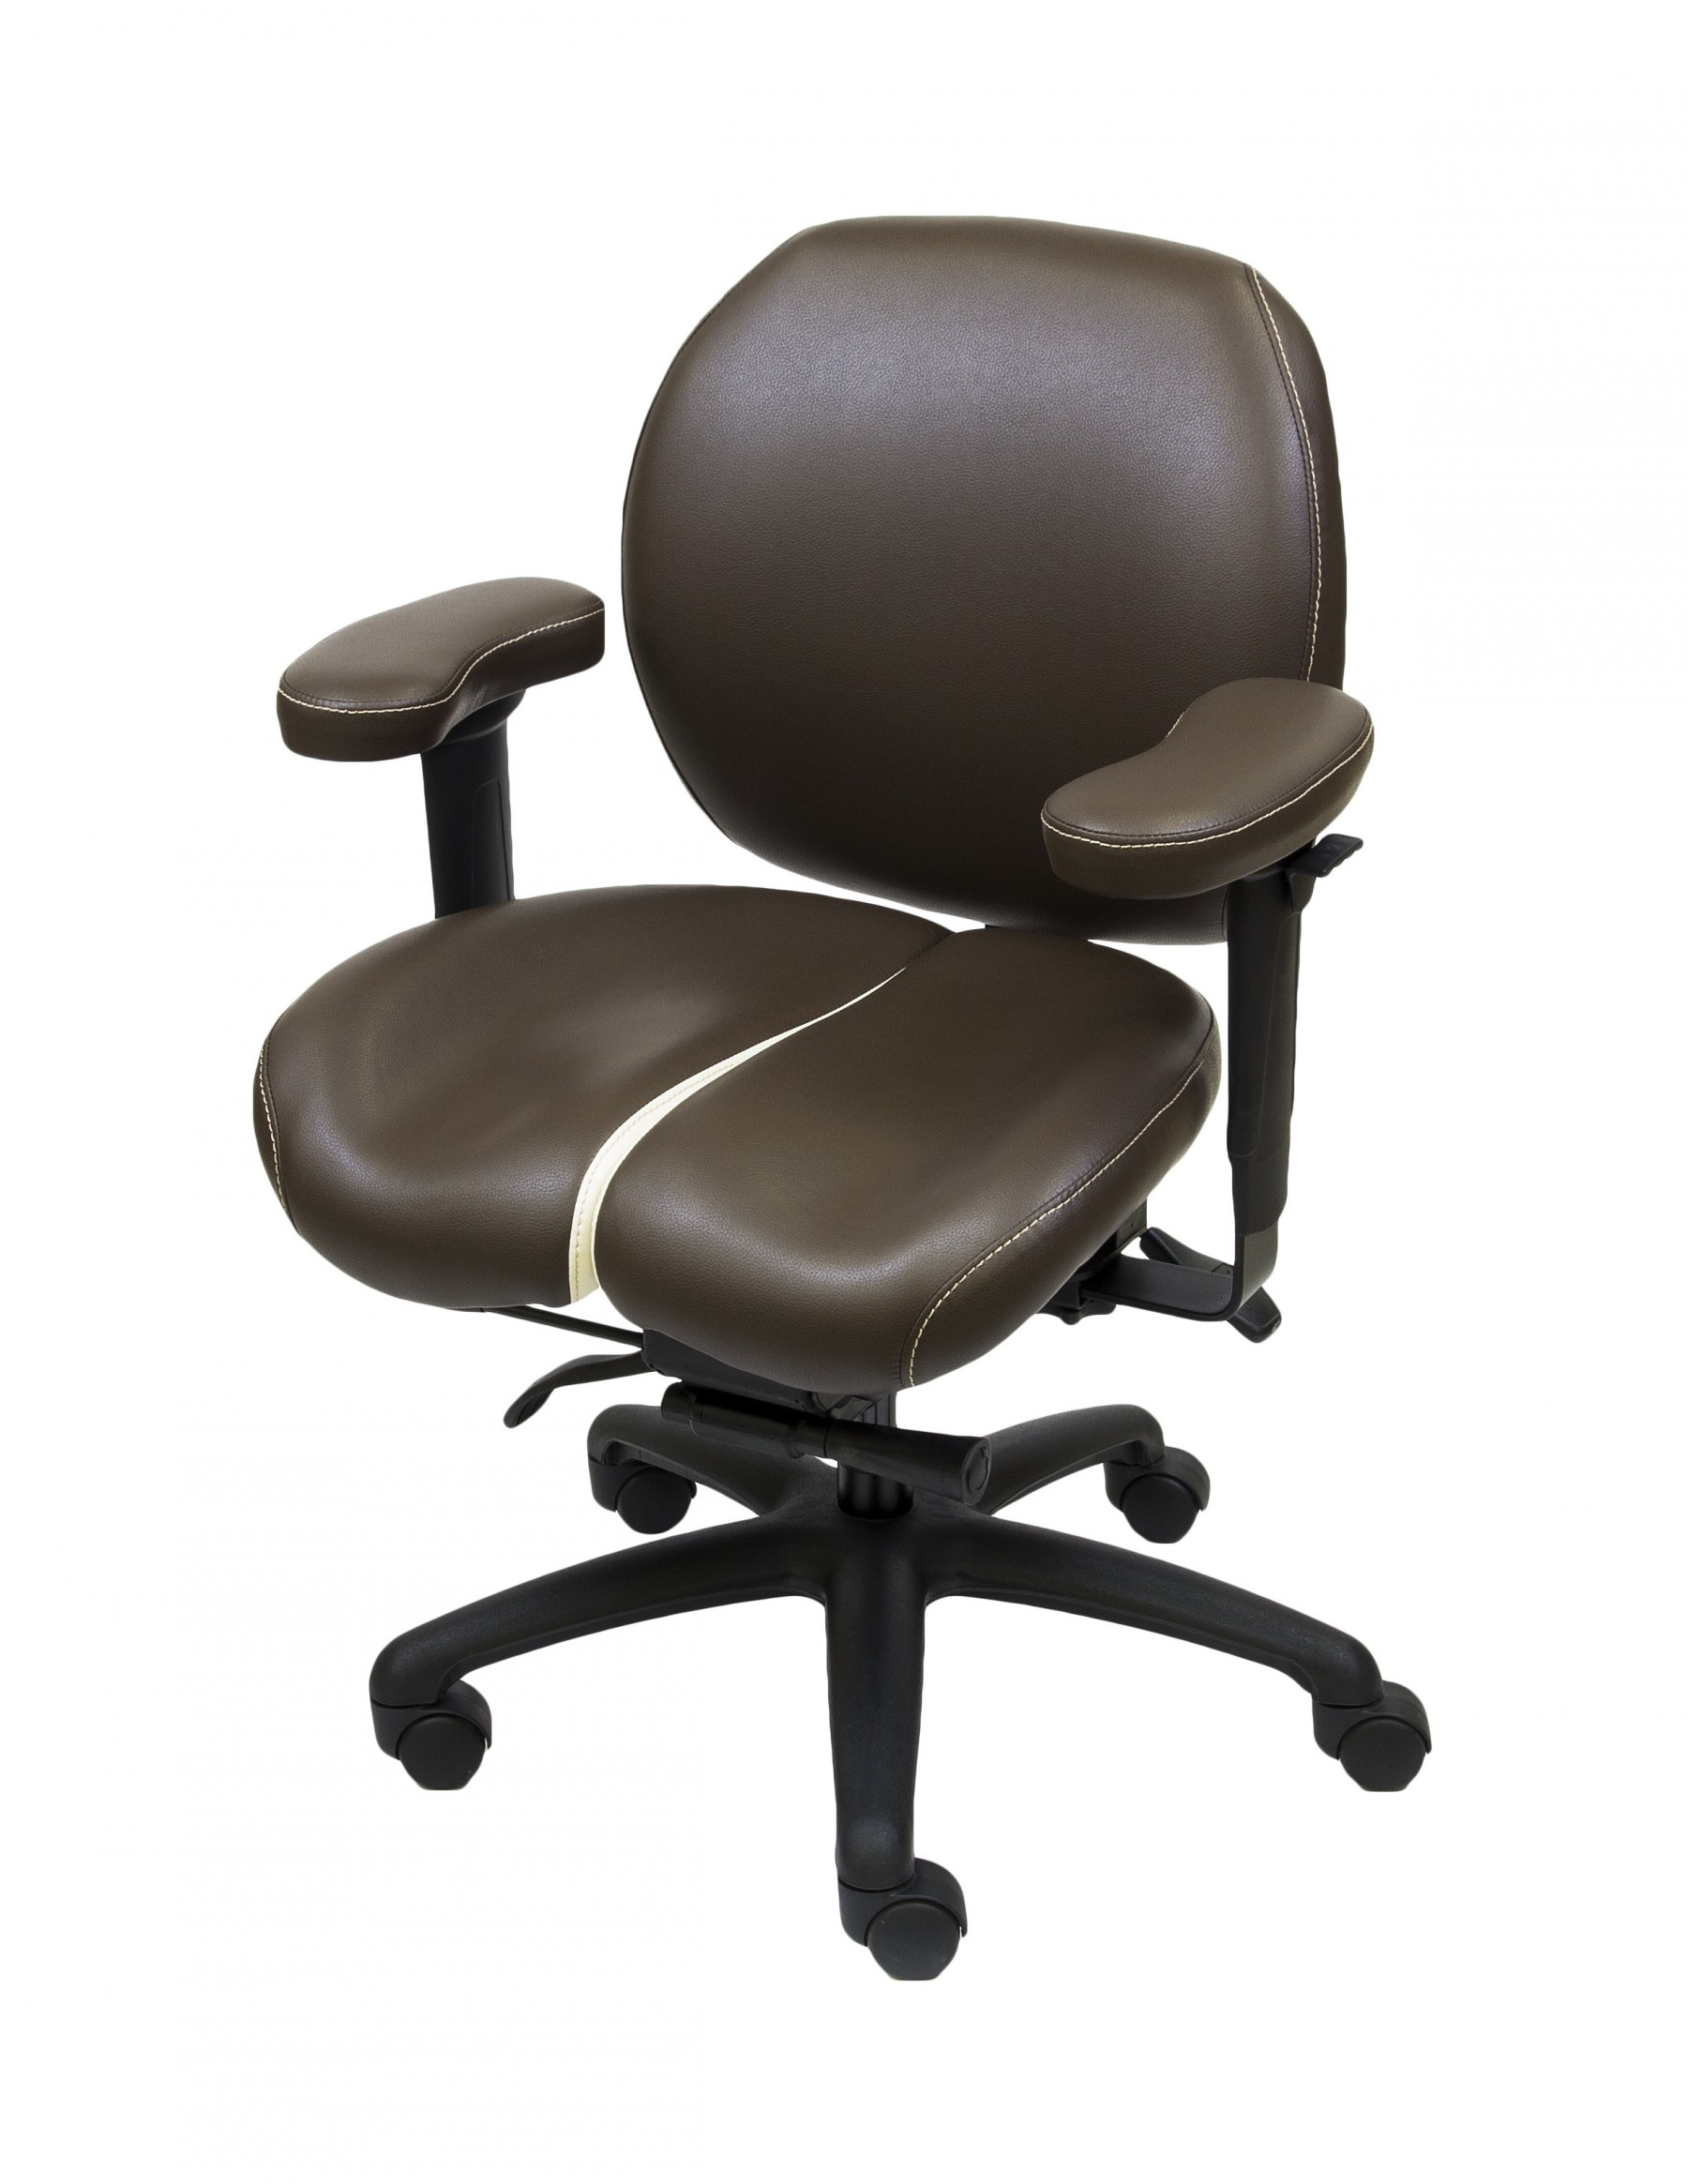 Lifeform Memory Foam Office Chair Relax The Back throughout sizing 1800 X 2329